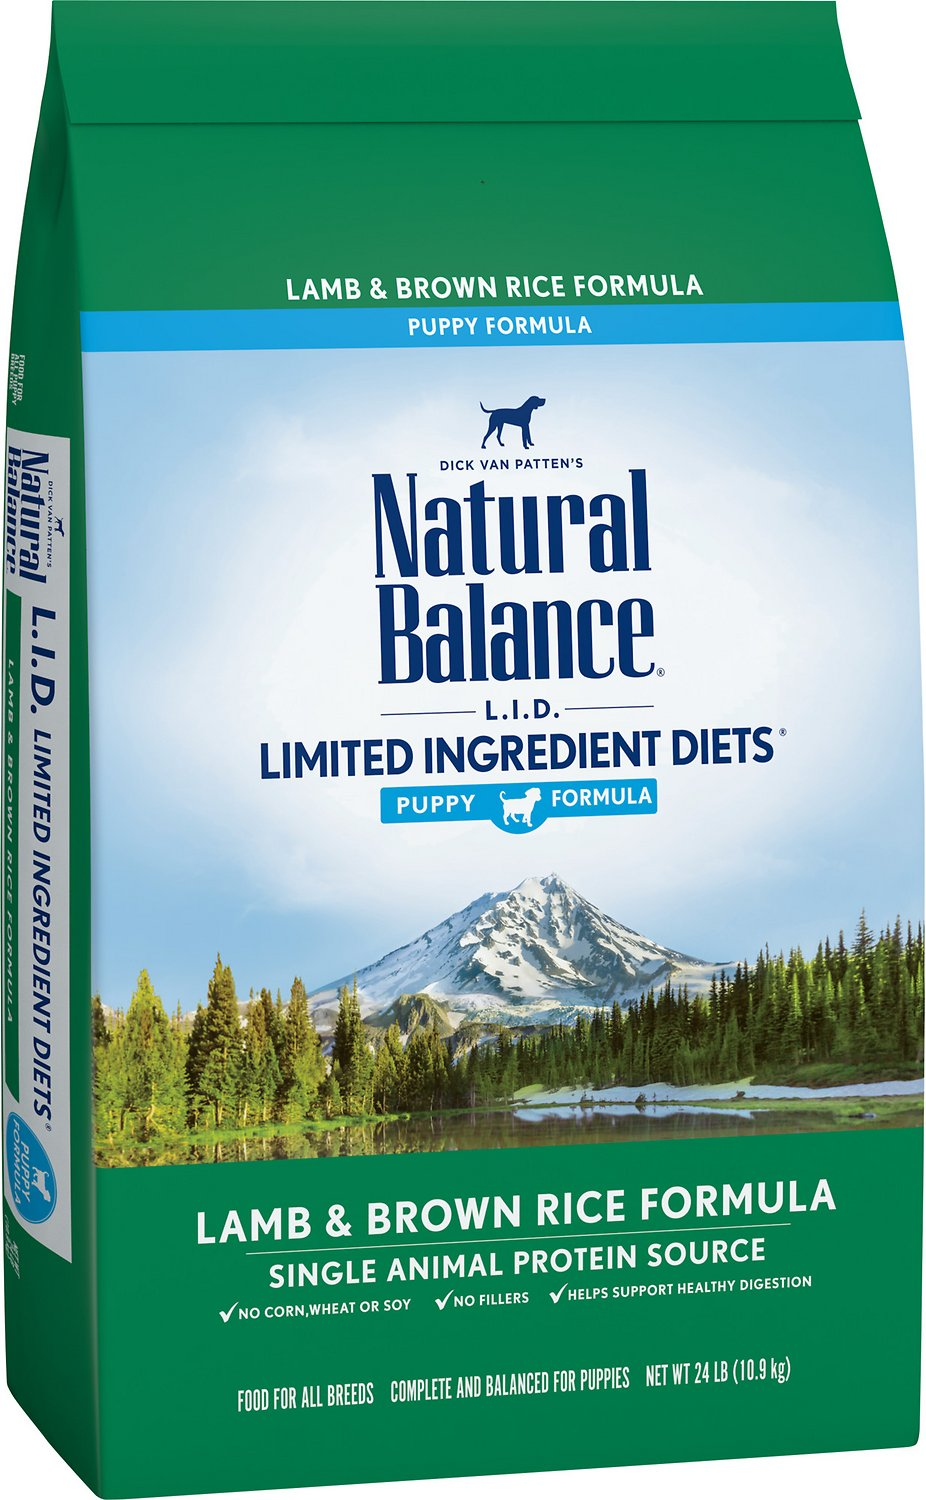 Natural Balance Lid Dog Food Reviews